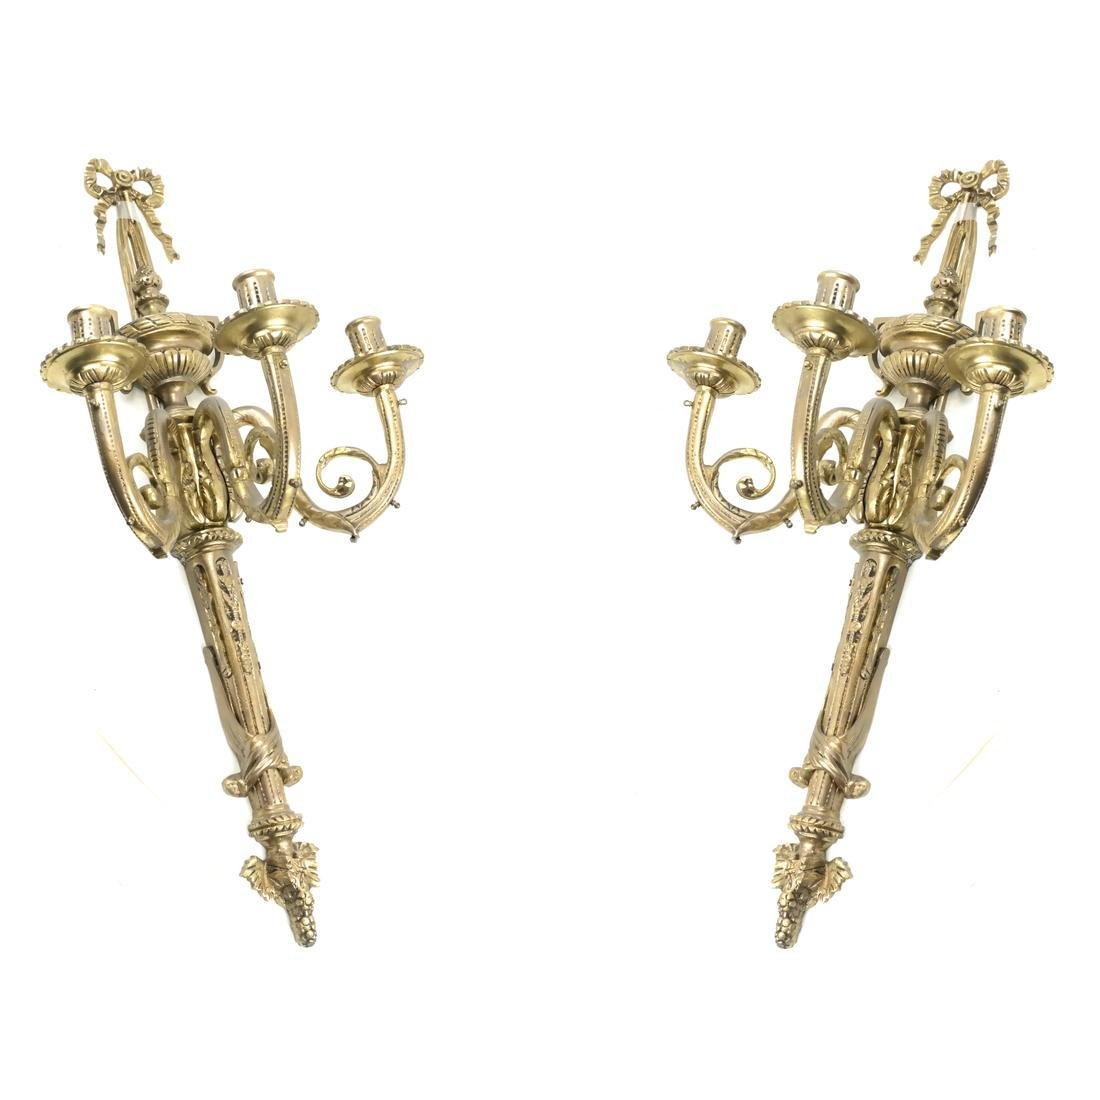 Pair of French Style Three-Light Sconces